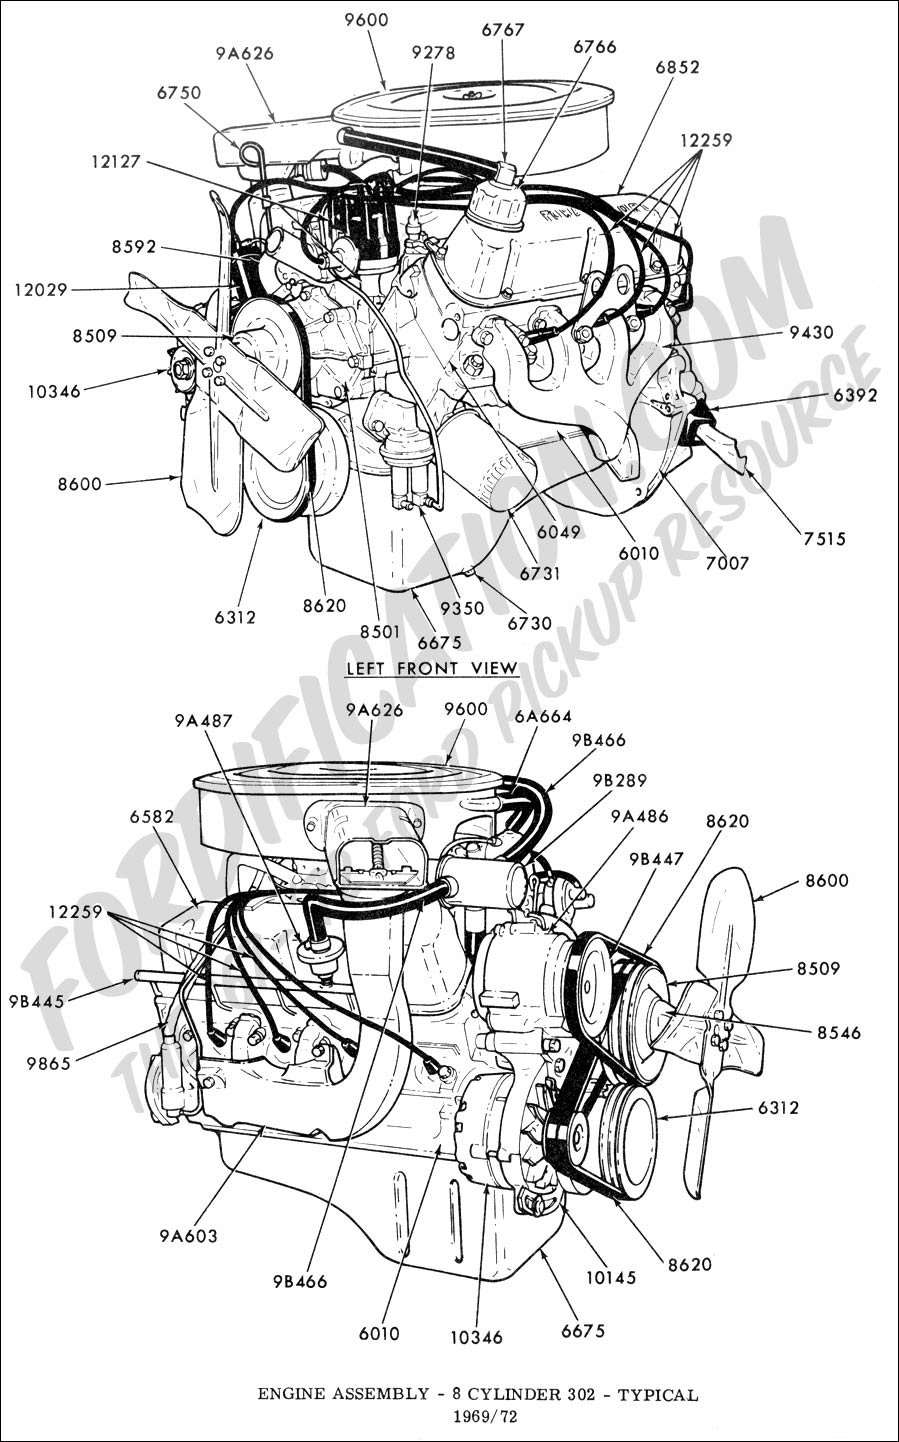 1973 Mustang Power Steering Diagram Auto Electrical Wiring Cougar Ford Truck Technical Drawings And Schematics Section E Engine Related Components